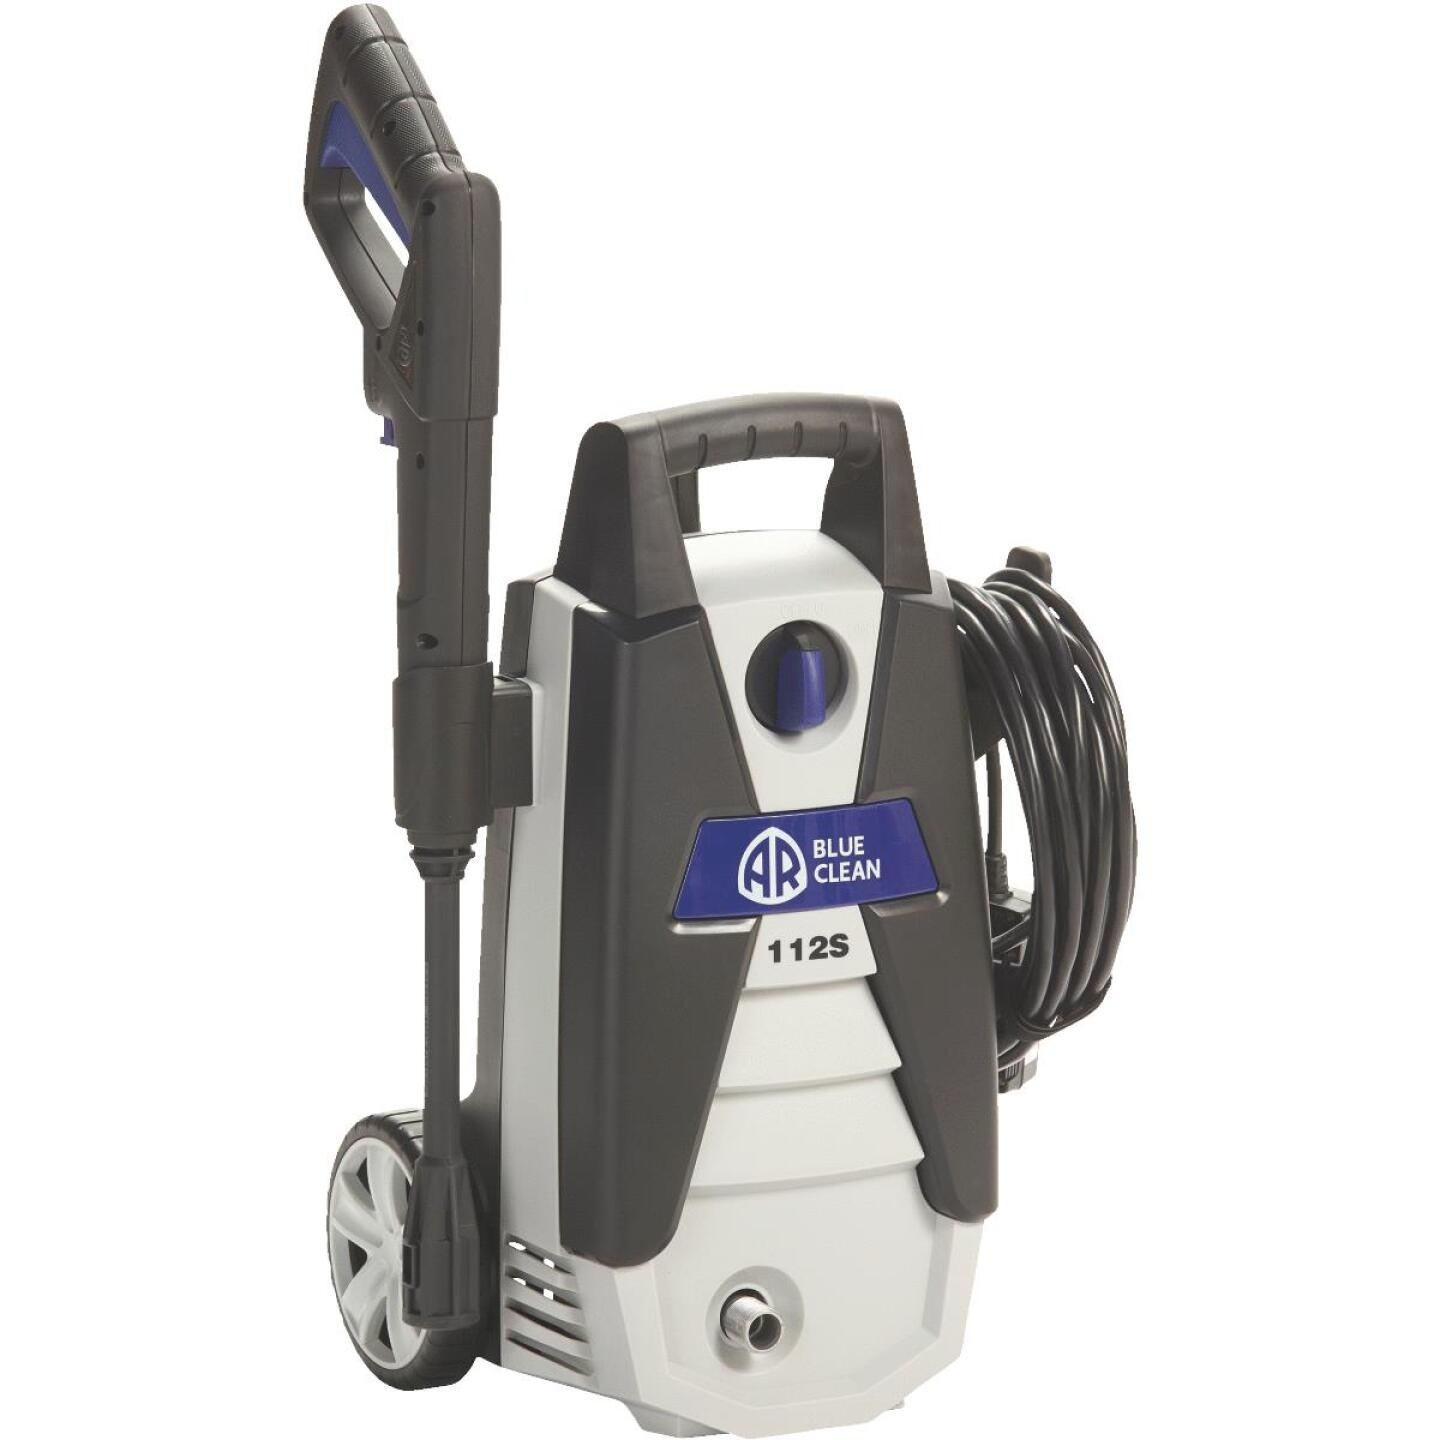 AR Blue Clean 1500 psi 1.4 GPM Cold Water Electric Pressure Washer Image 1